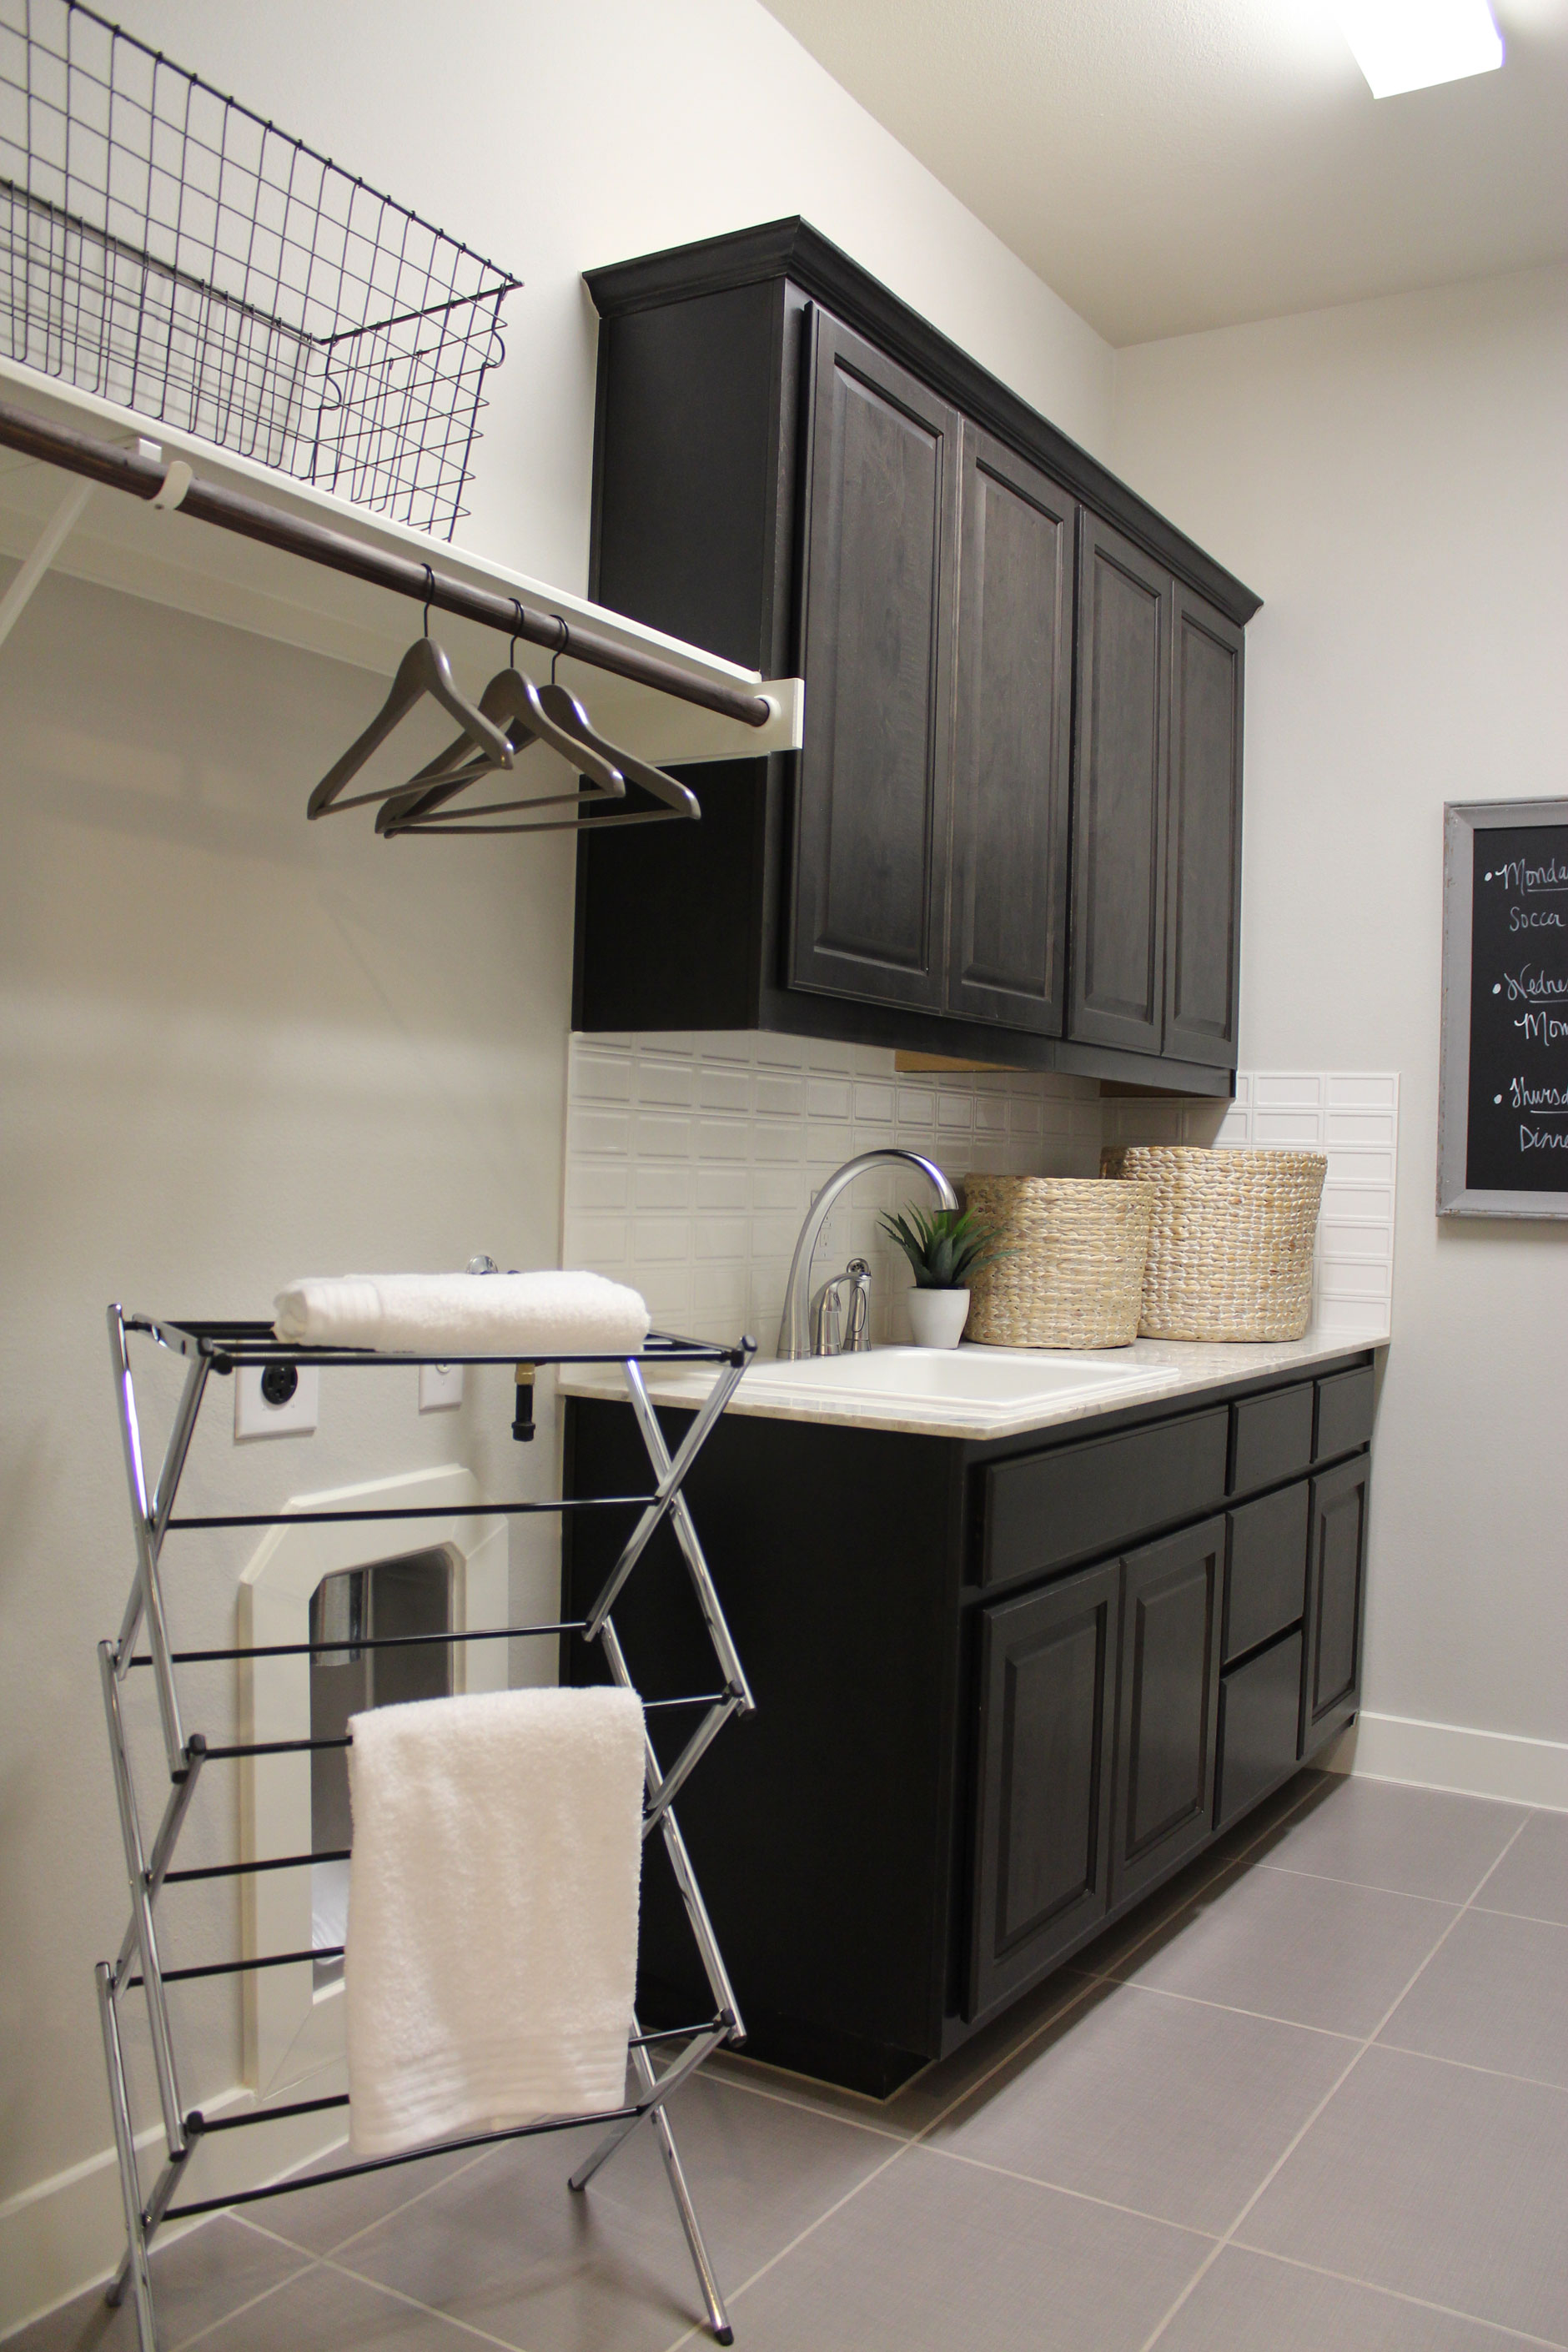 Black painted laundry room cabinets with raised panel cope and stick cabinet doors with OE3, IE1, RP1 profiles